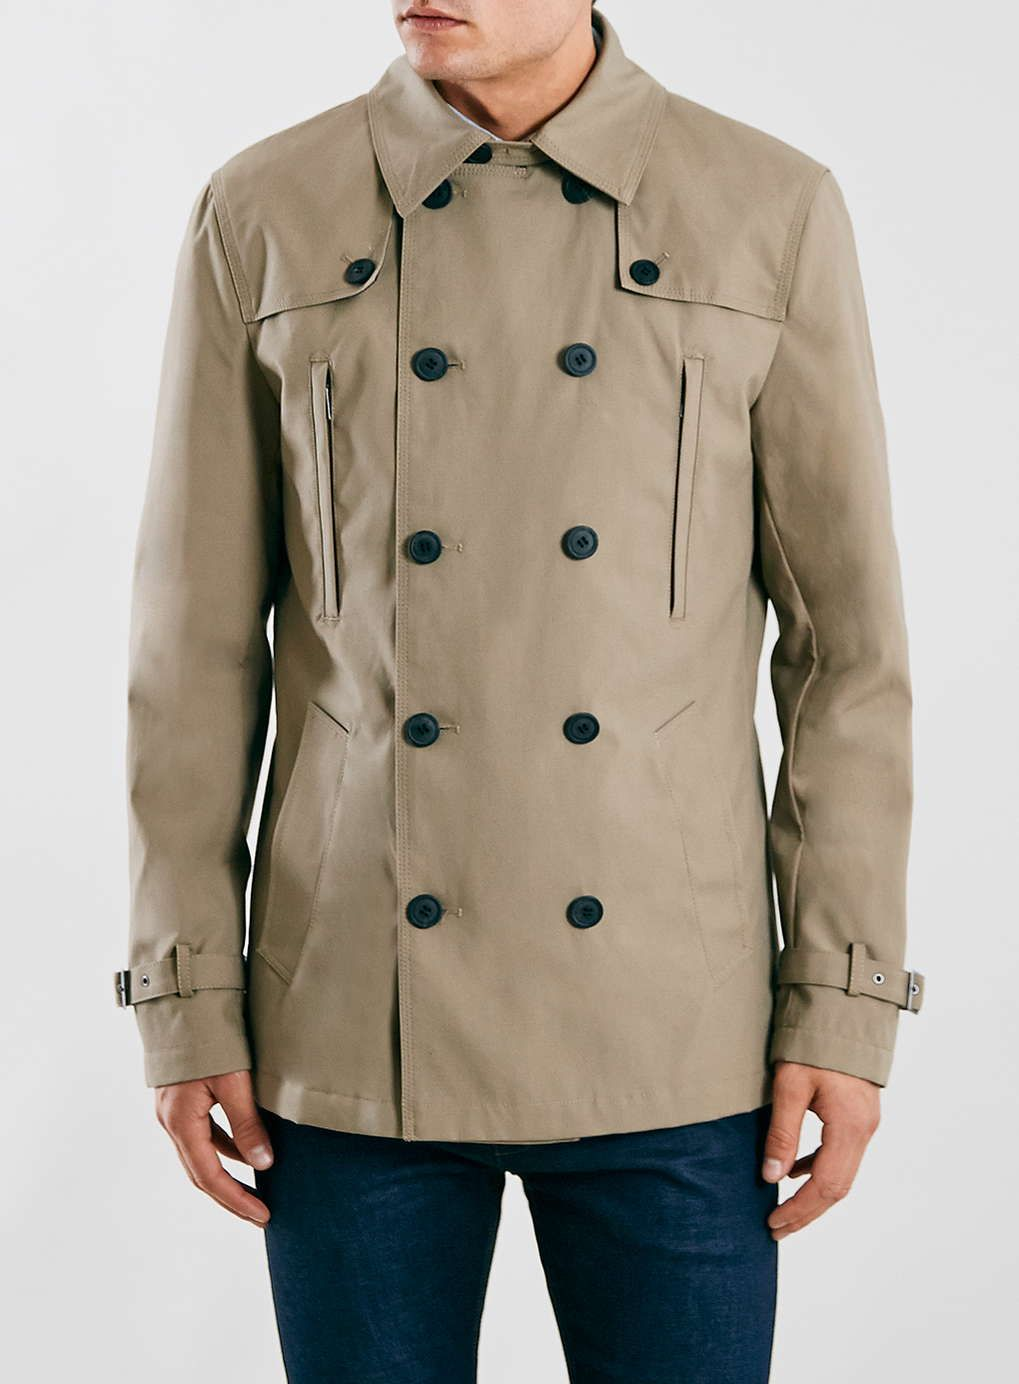 The Trench Homme Topman Trenches Selected Coat Beige 250 ZBqpYWA